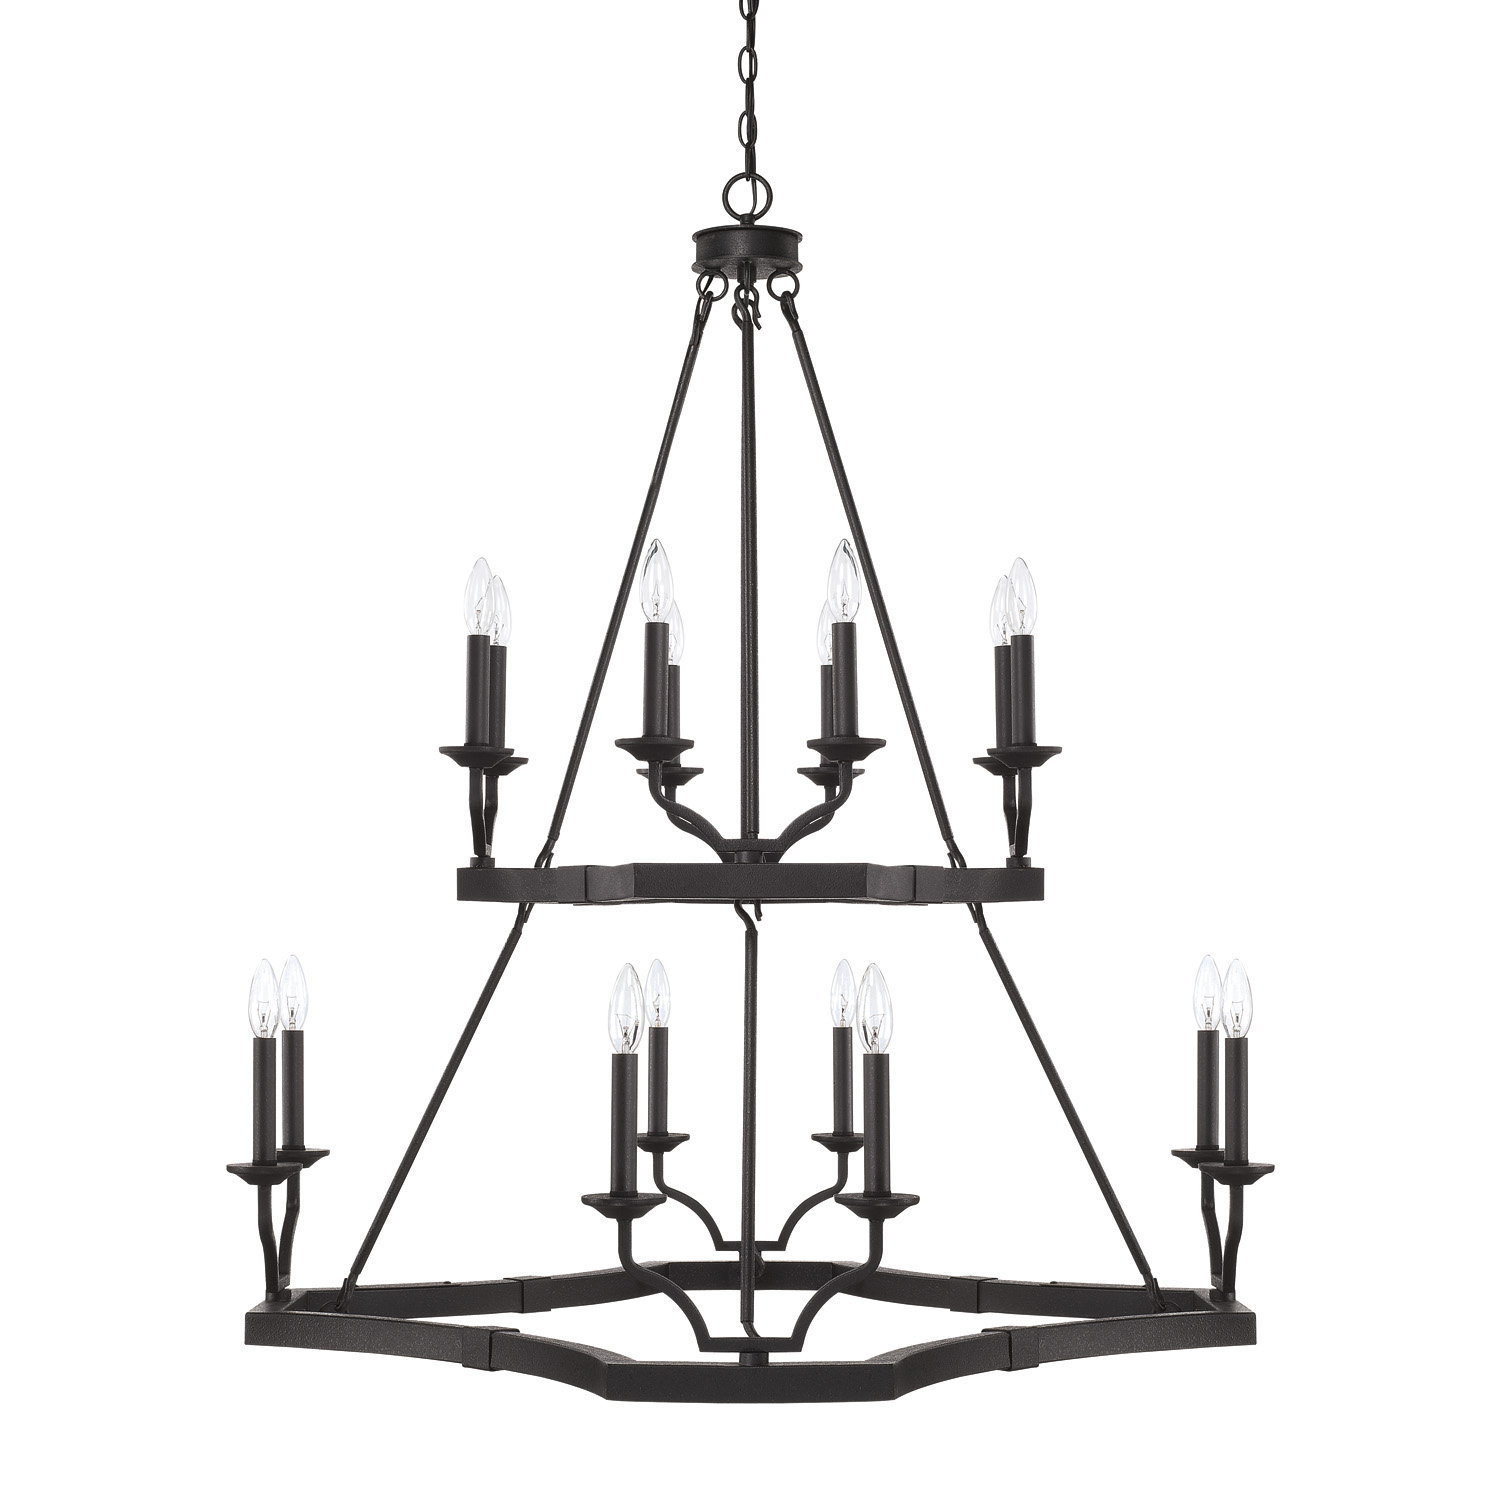 16 Light Chandelier from the Ravenwood collection by Capital Lighting 419801BI